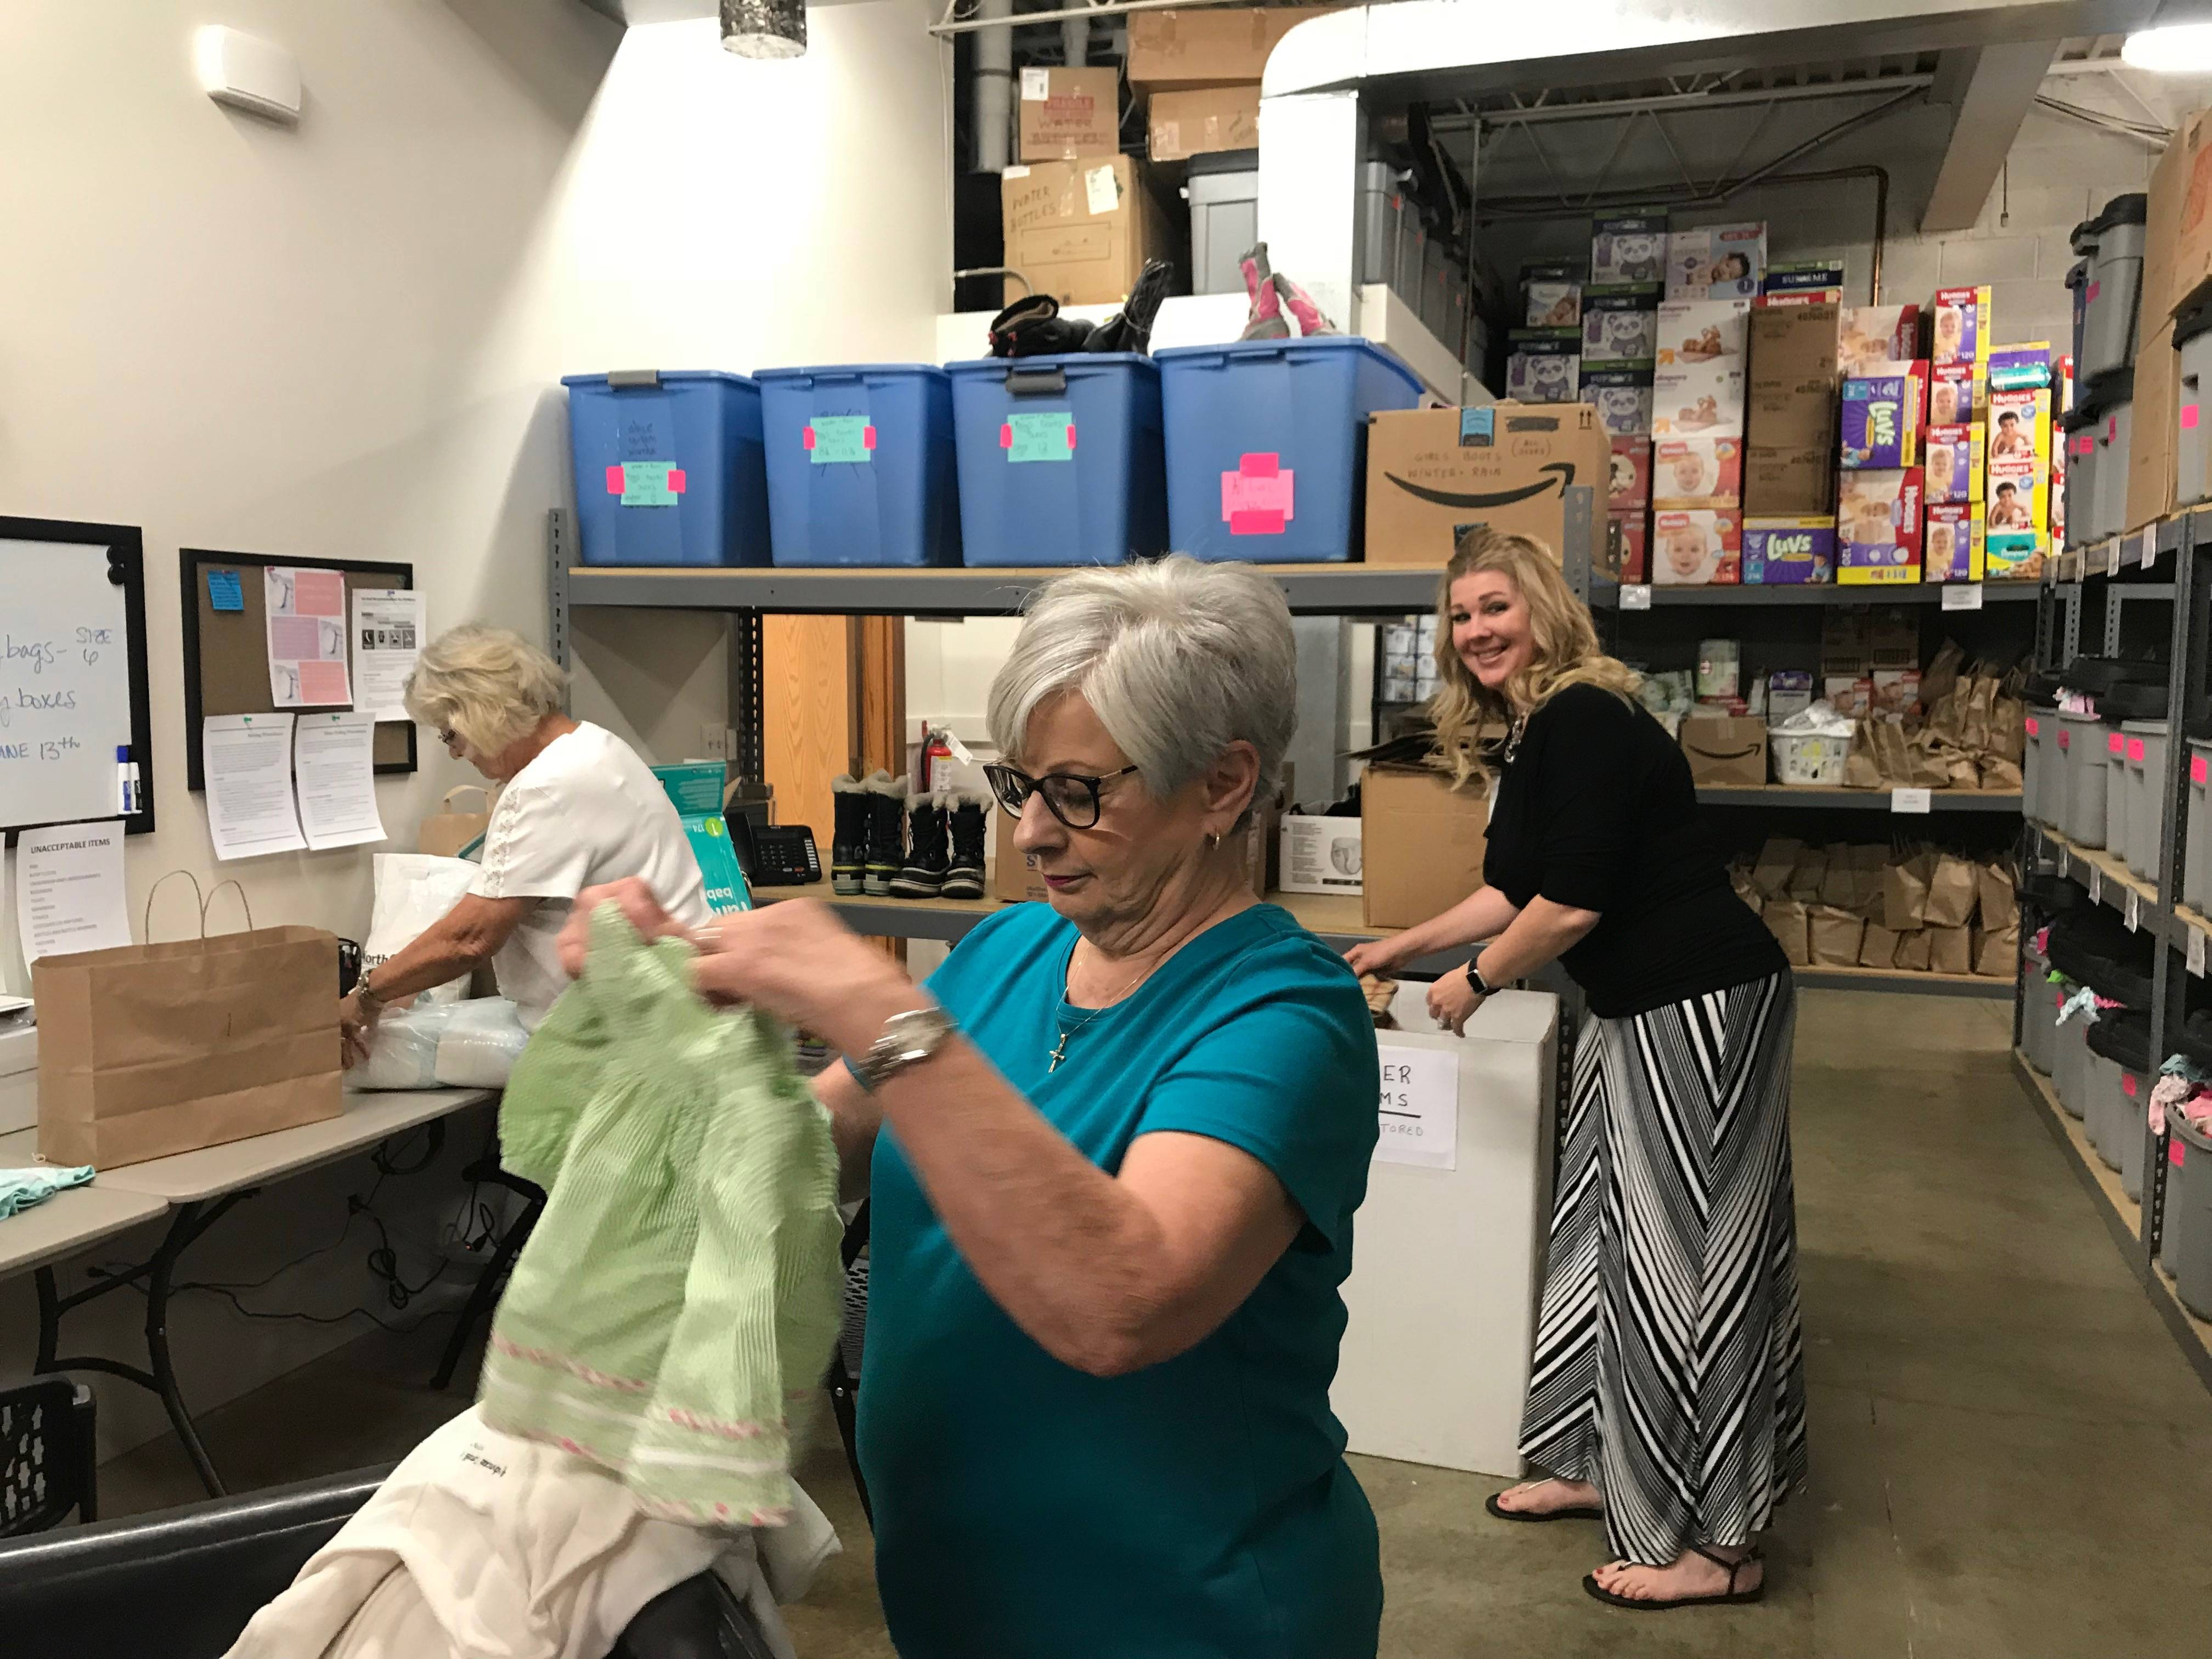 Volunteers Bunny Debevec, front, and Laura Dmytrenko, left, sort items of clothing in the storage room at the Twice As Nice Mother & Child facility on Grove Avenue in Gurnee as Ann Marie Mathis, founder of the nonprofit, checks out some of the latest donations.